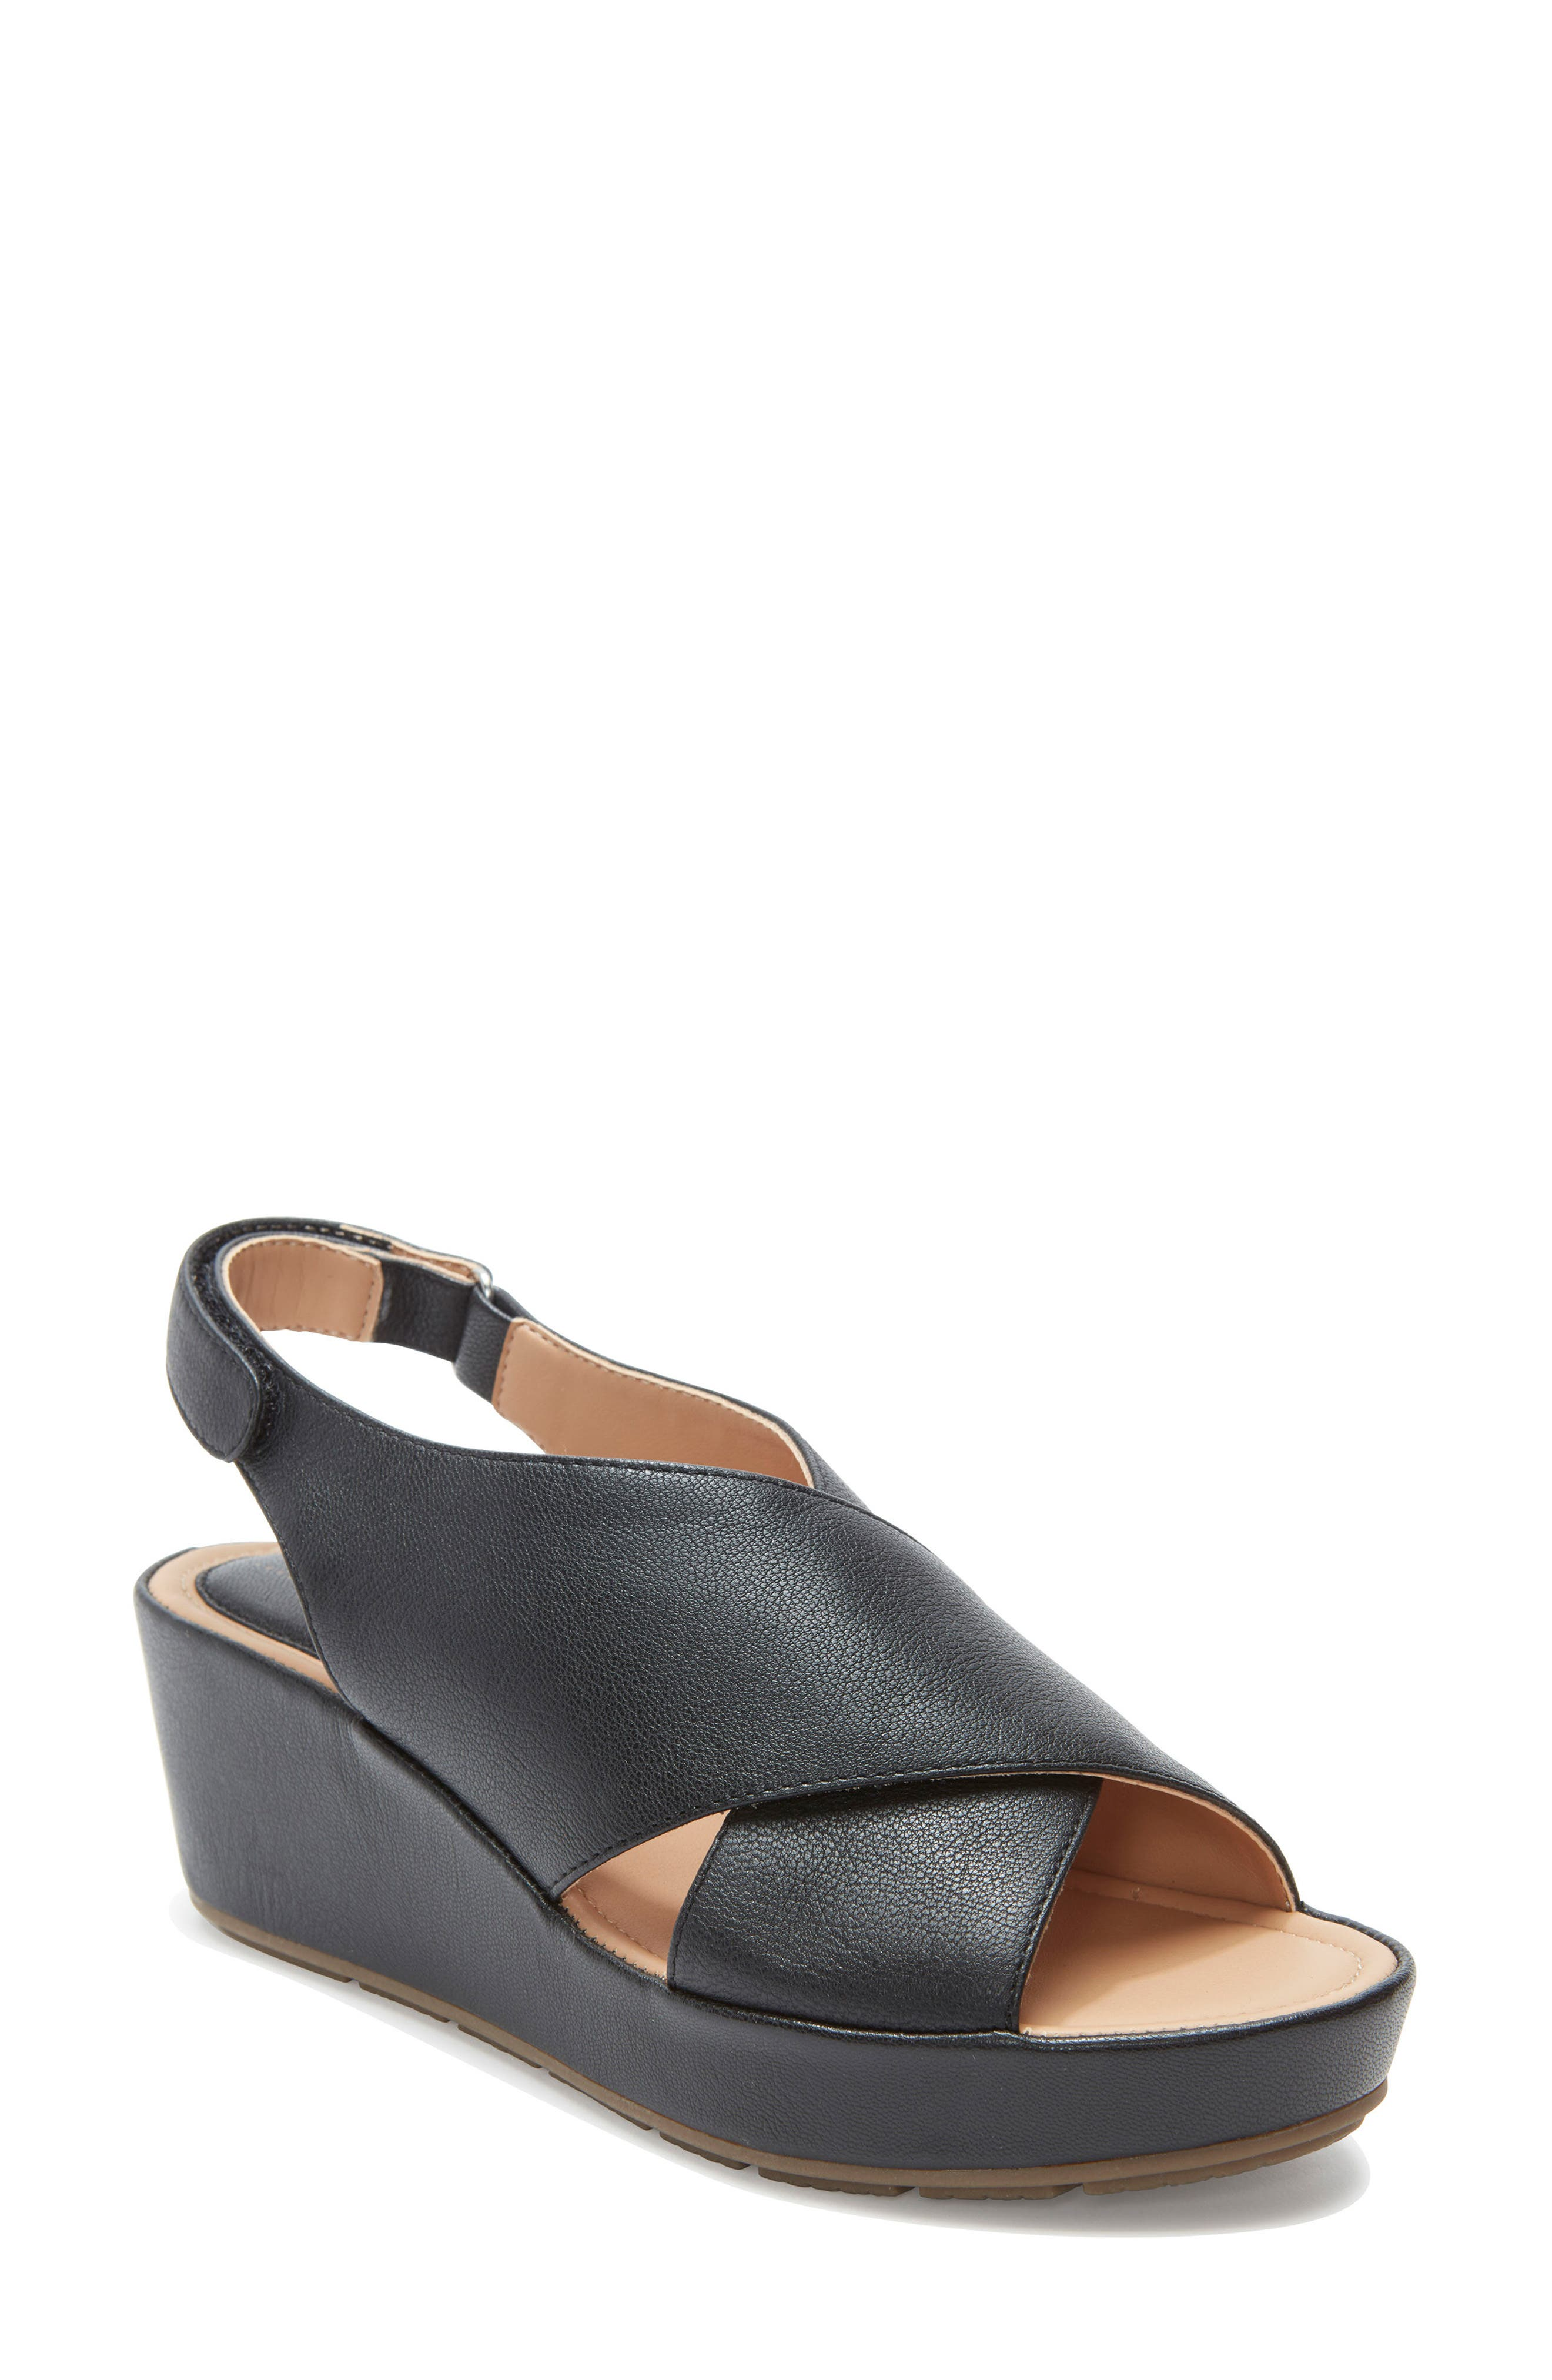 ME TOO Arena Wedge Sandal, Main, color, BLACK LEATHER